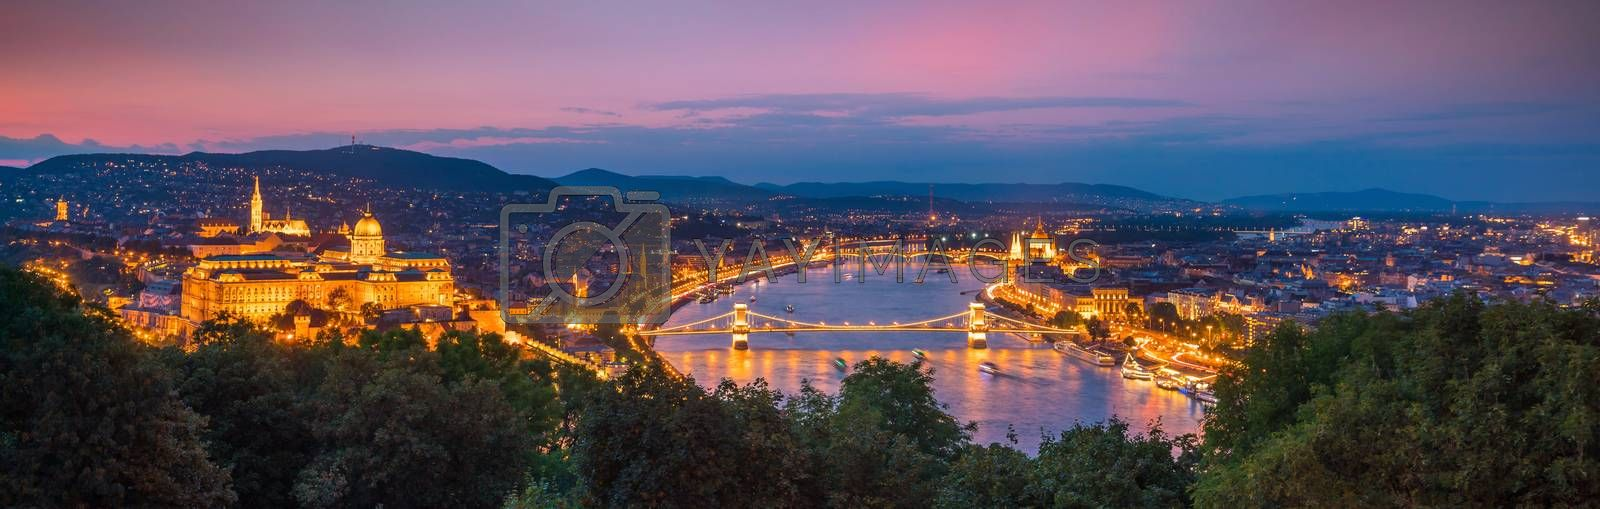 Royalty free image of Budapest skyline in Hungary by f11photo